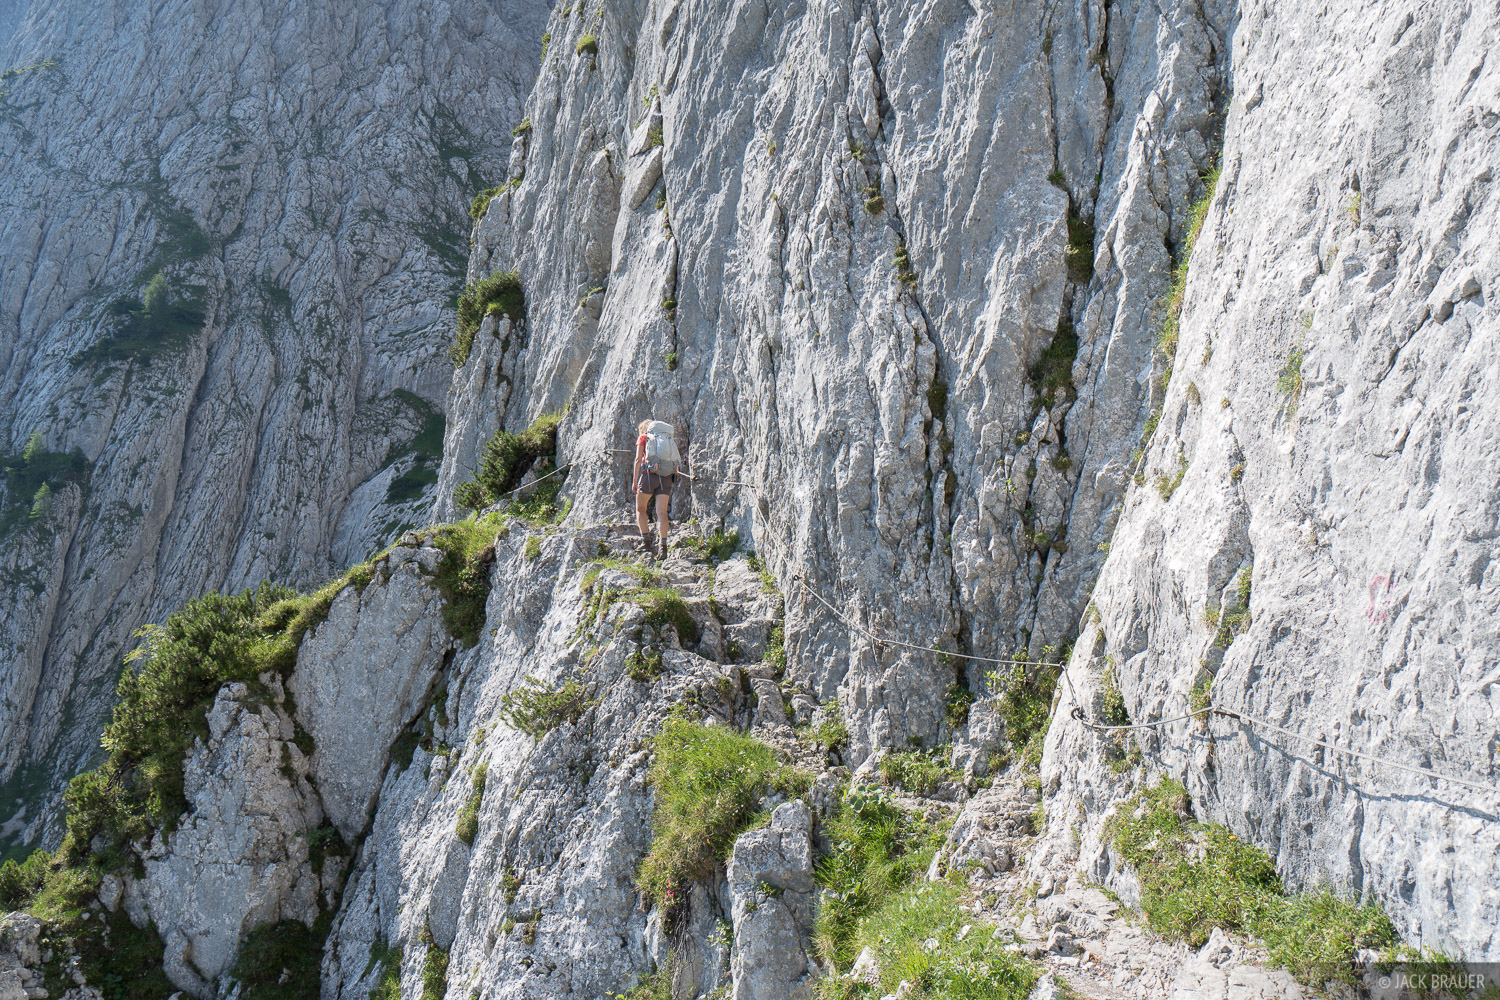 Hiking along a precipitous ledge at the beginning of the famous Eggersteig route.